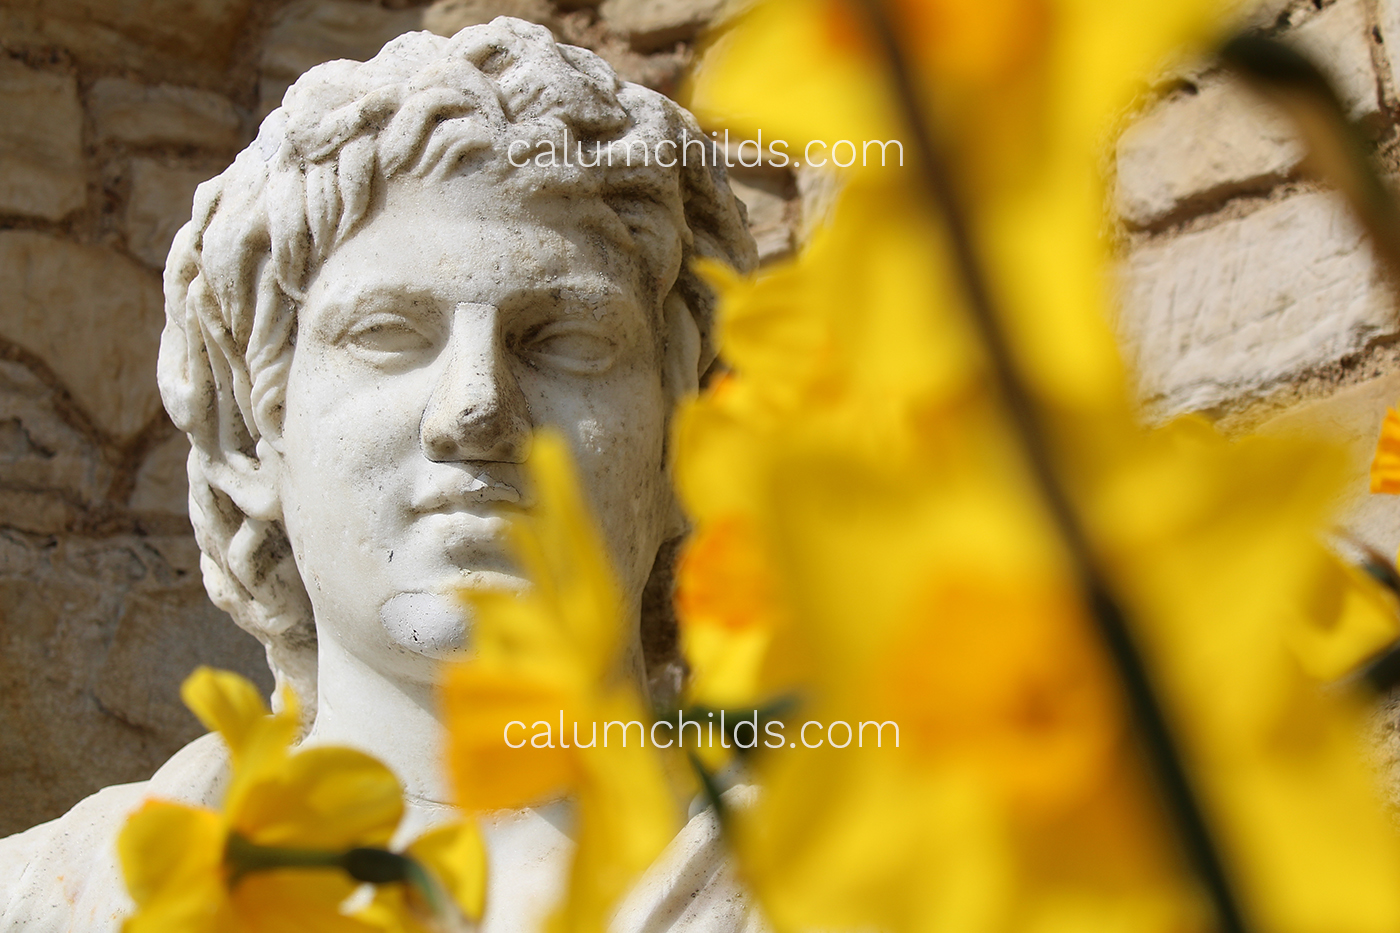 A male statue (left) is surrounded by daffodils.